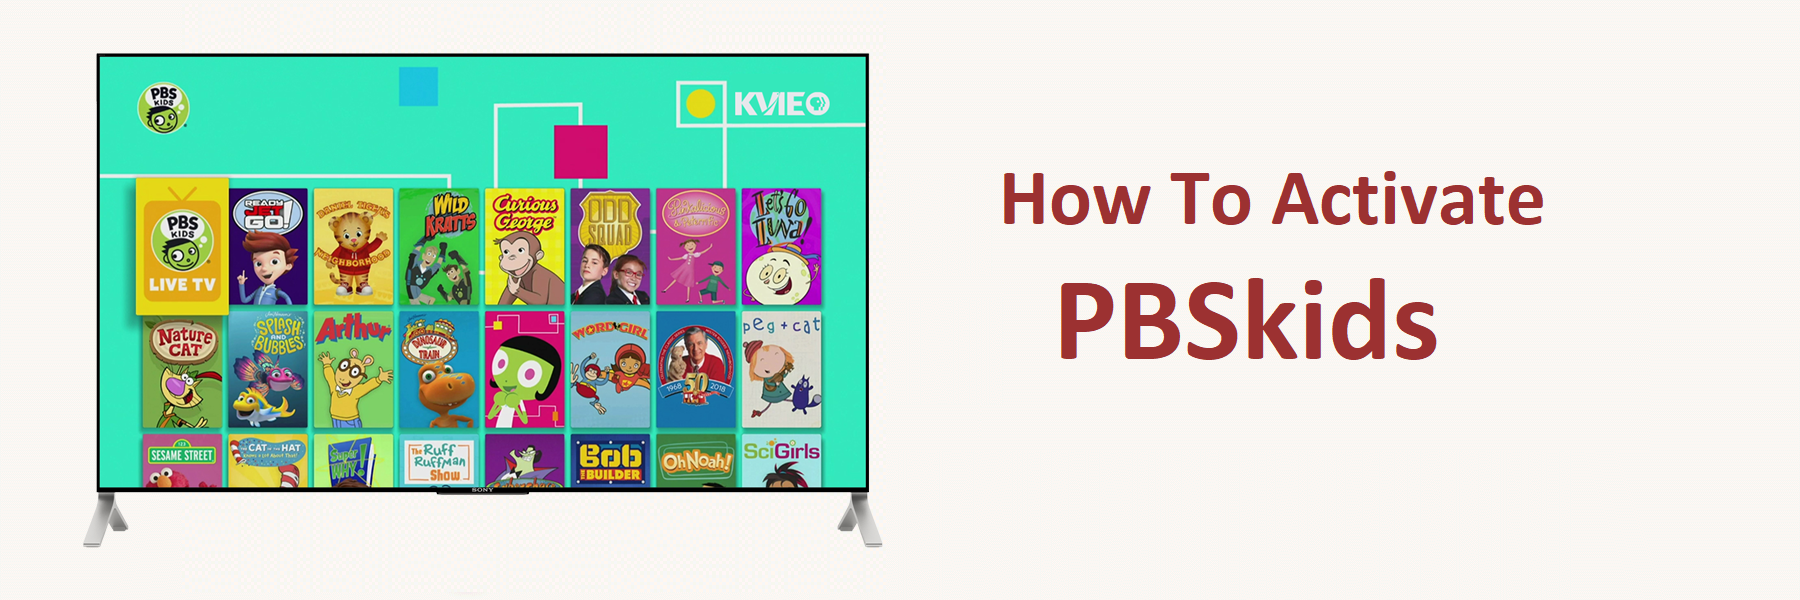 PBSkids Activate - Best Ways To Activate PBSkids From pbskids.org/activate